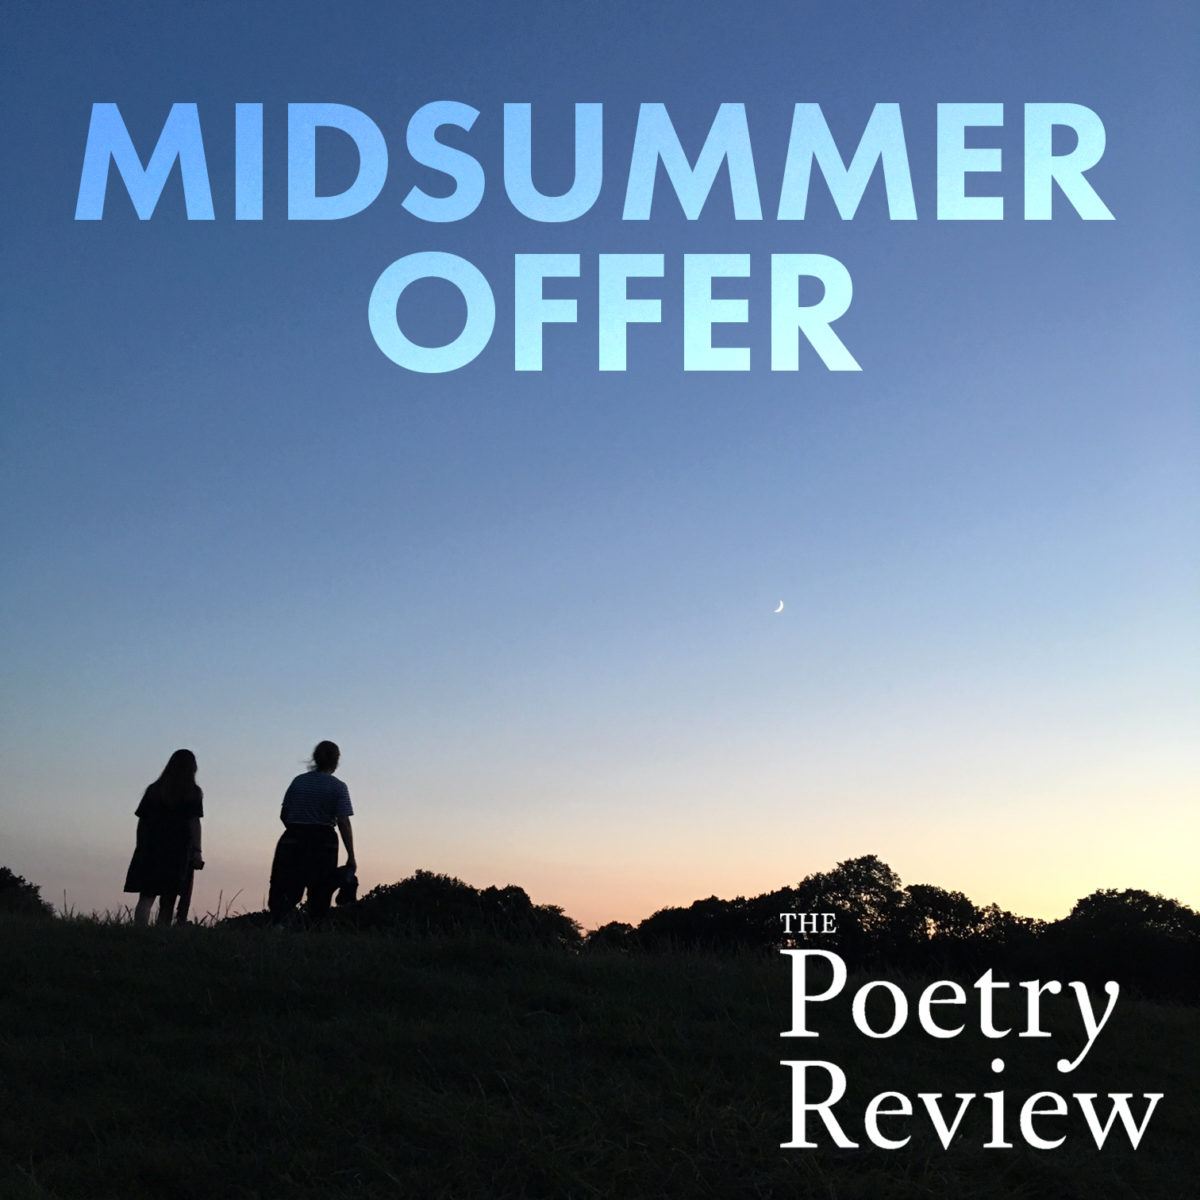 test Twitter Media - It's the final day of the Midsummer Poetry Review offer! 20% off an annual digital subscription @exacteditions for Poetry Review including the brand new Summer issue and the modern archive. Details here https://t.co/UseiAAOdUX https://t.co/I0SVhYNVax